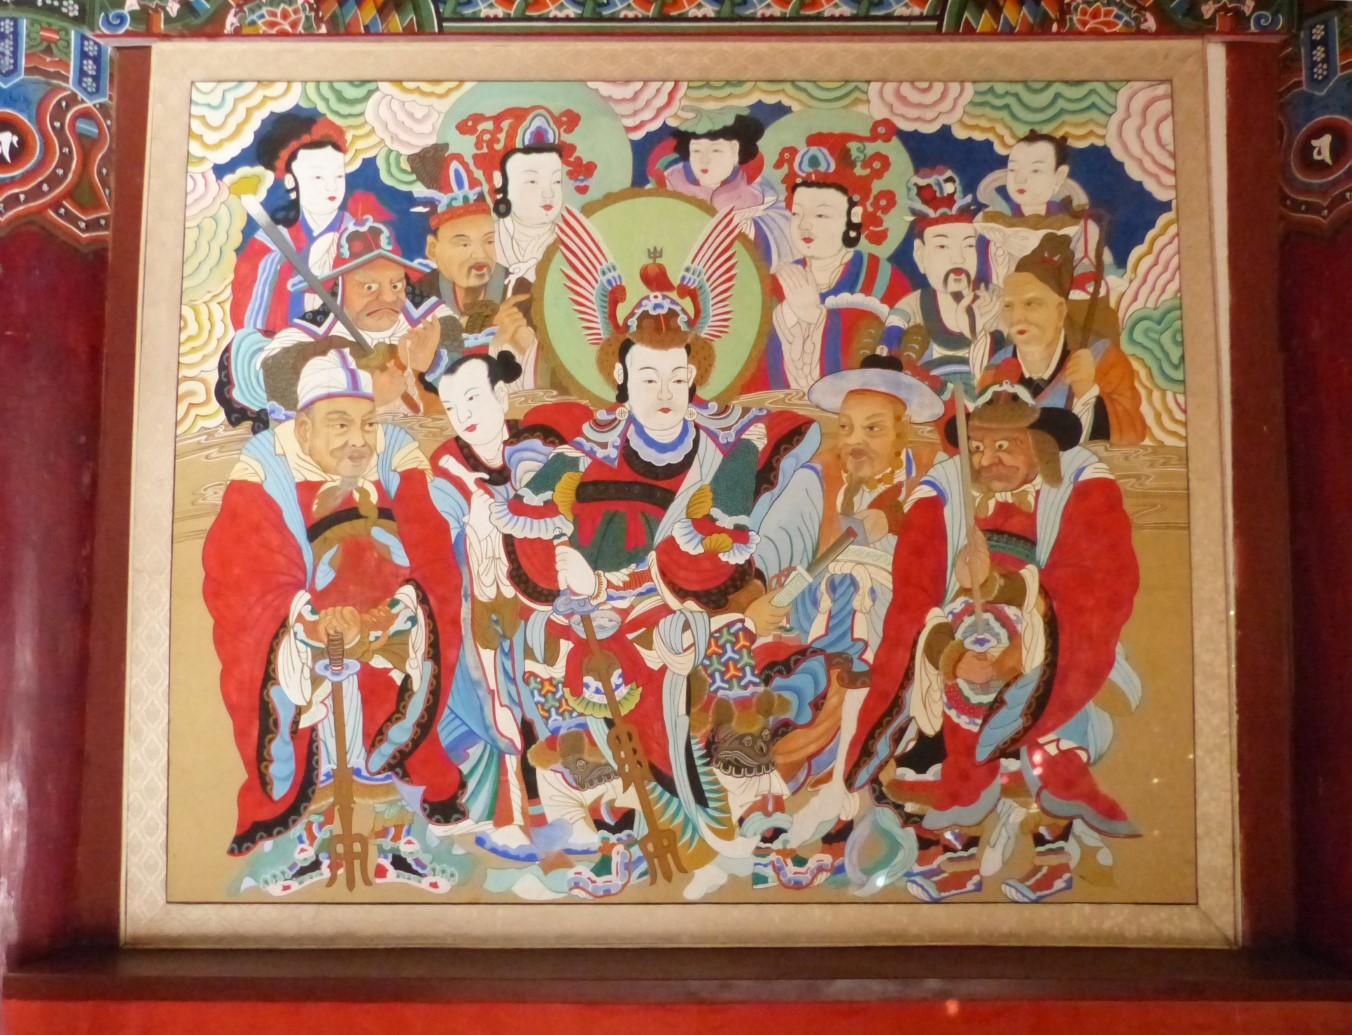 Colourful painting in oriental style